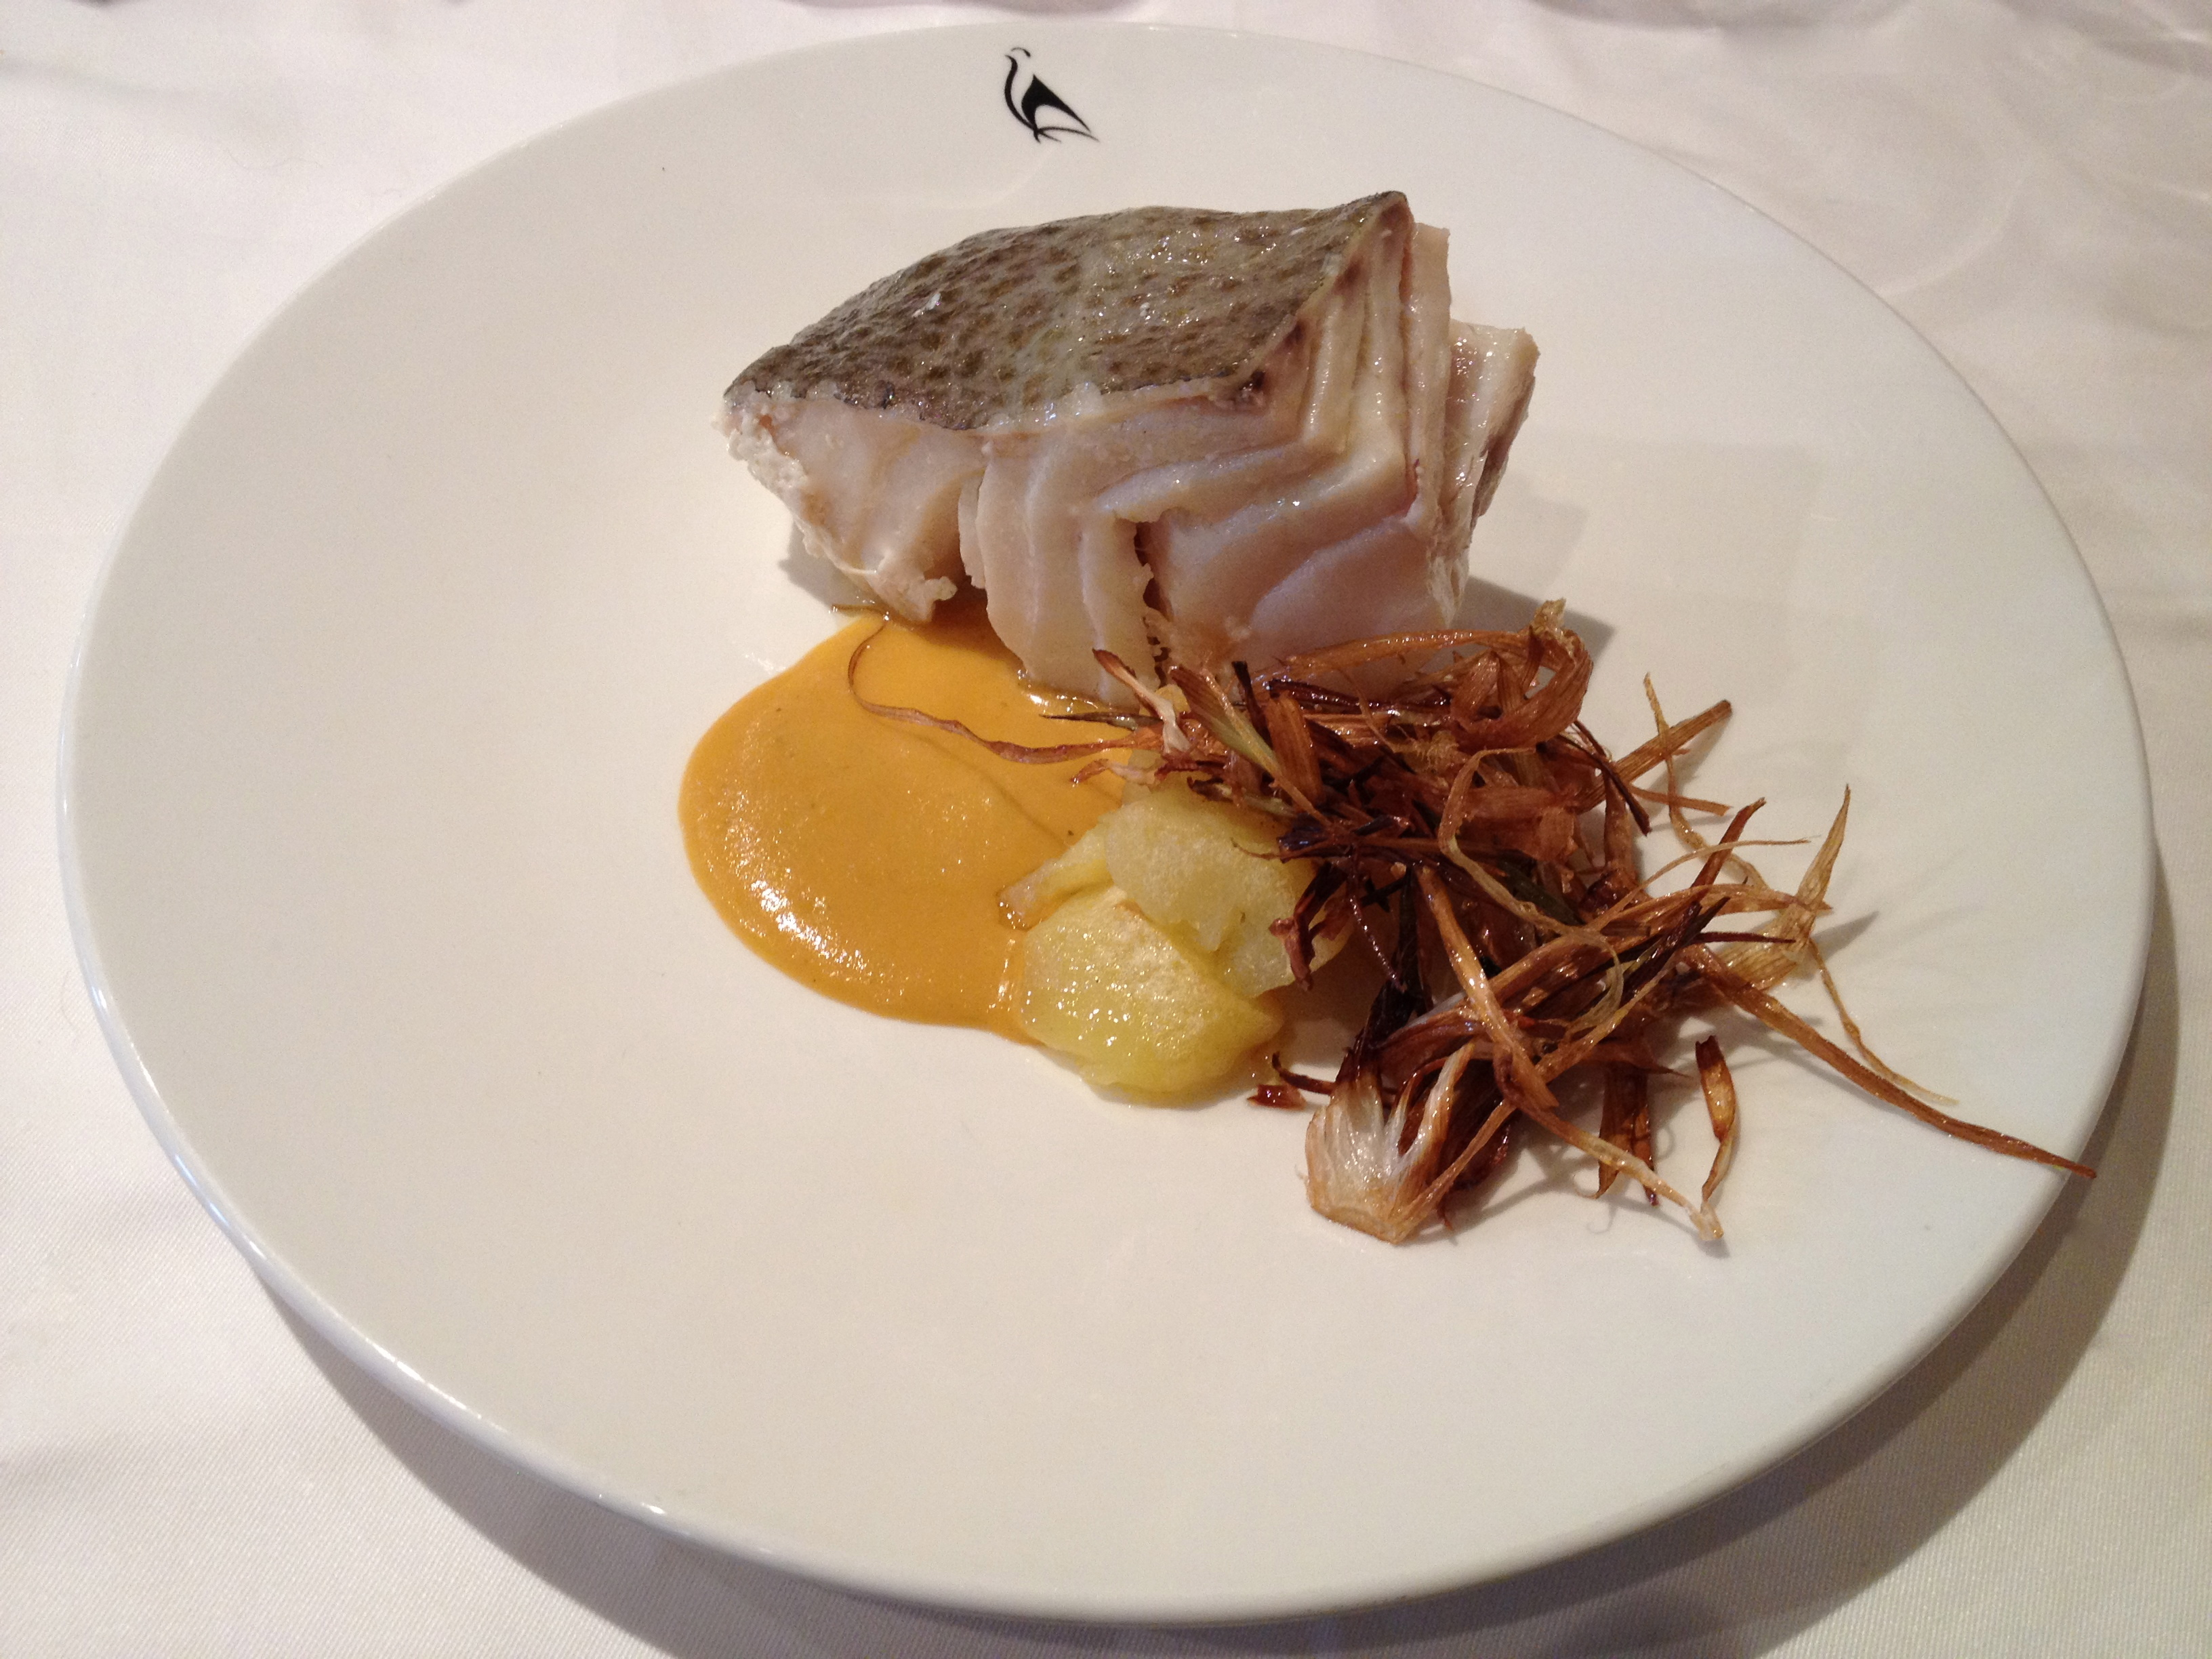 Bacalao (turbot) with mild curry sauce, potatoes and crispy vegetables.